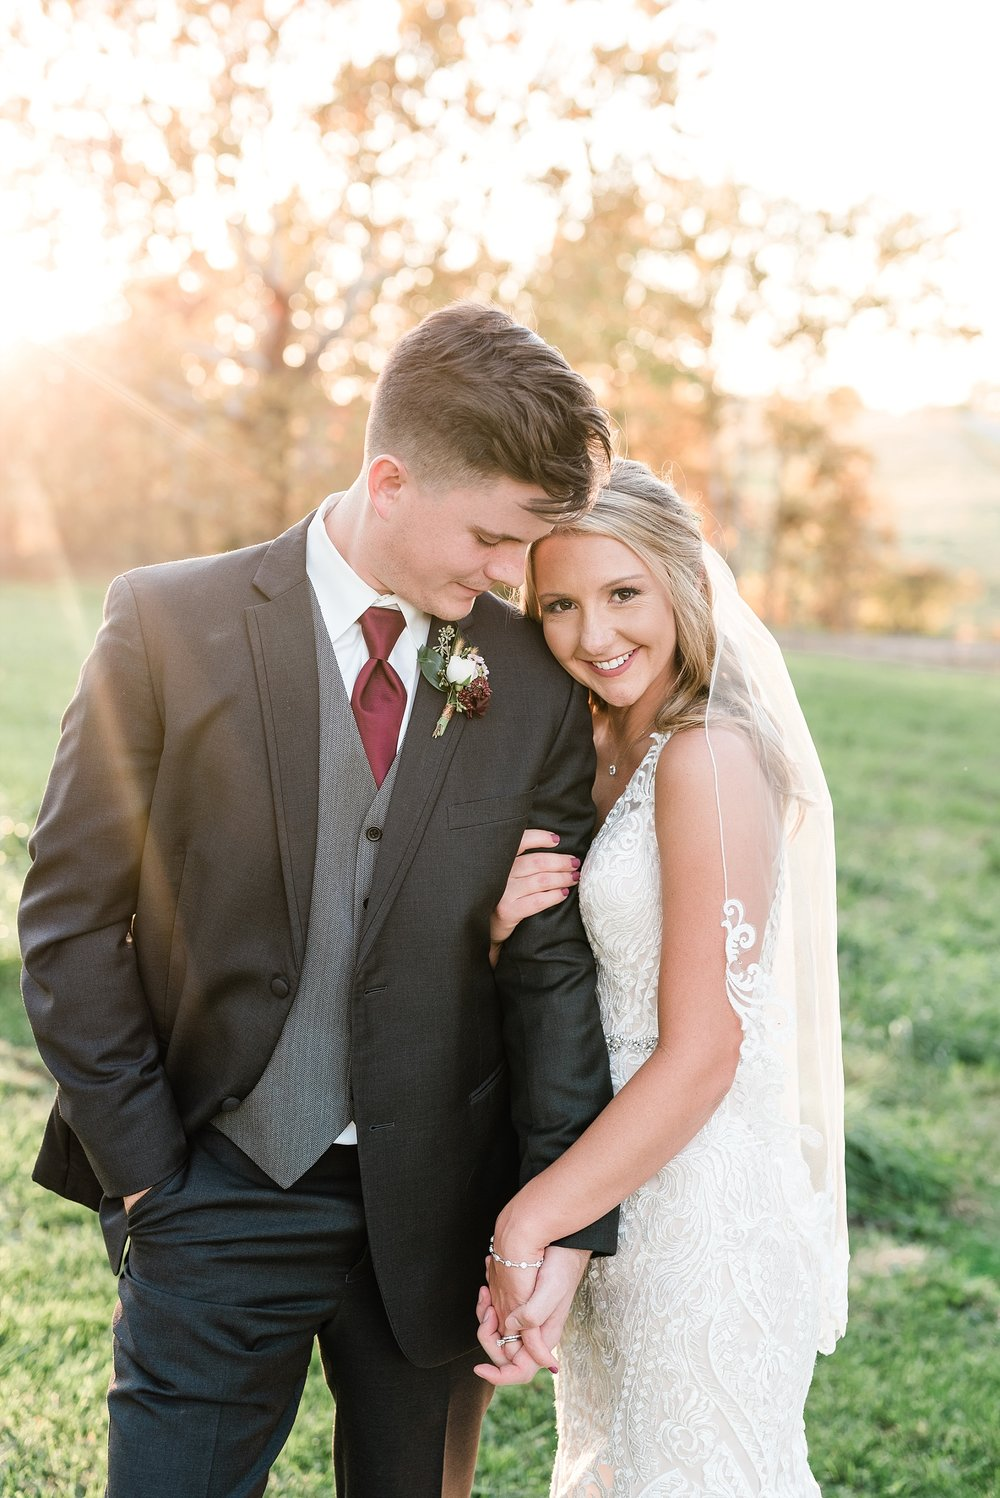 Golden Autumn Outdoor Wedding with Ivory, Bergundy, and Blush Color Palette at Blue Bell Farms  by Kelsi Kliethermes Photography_0072.jpg